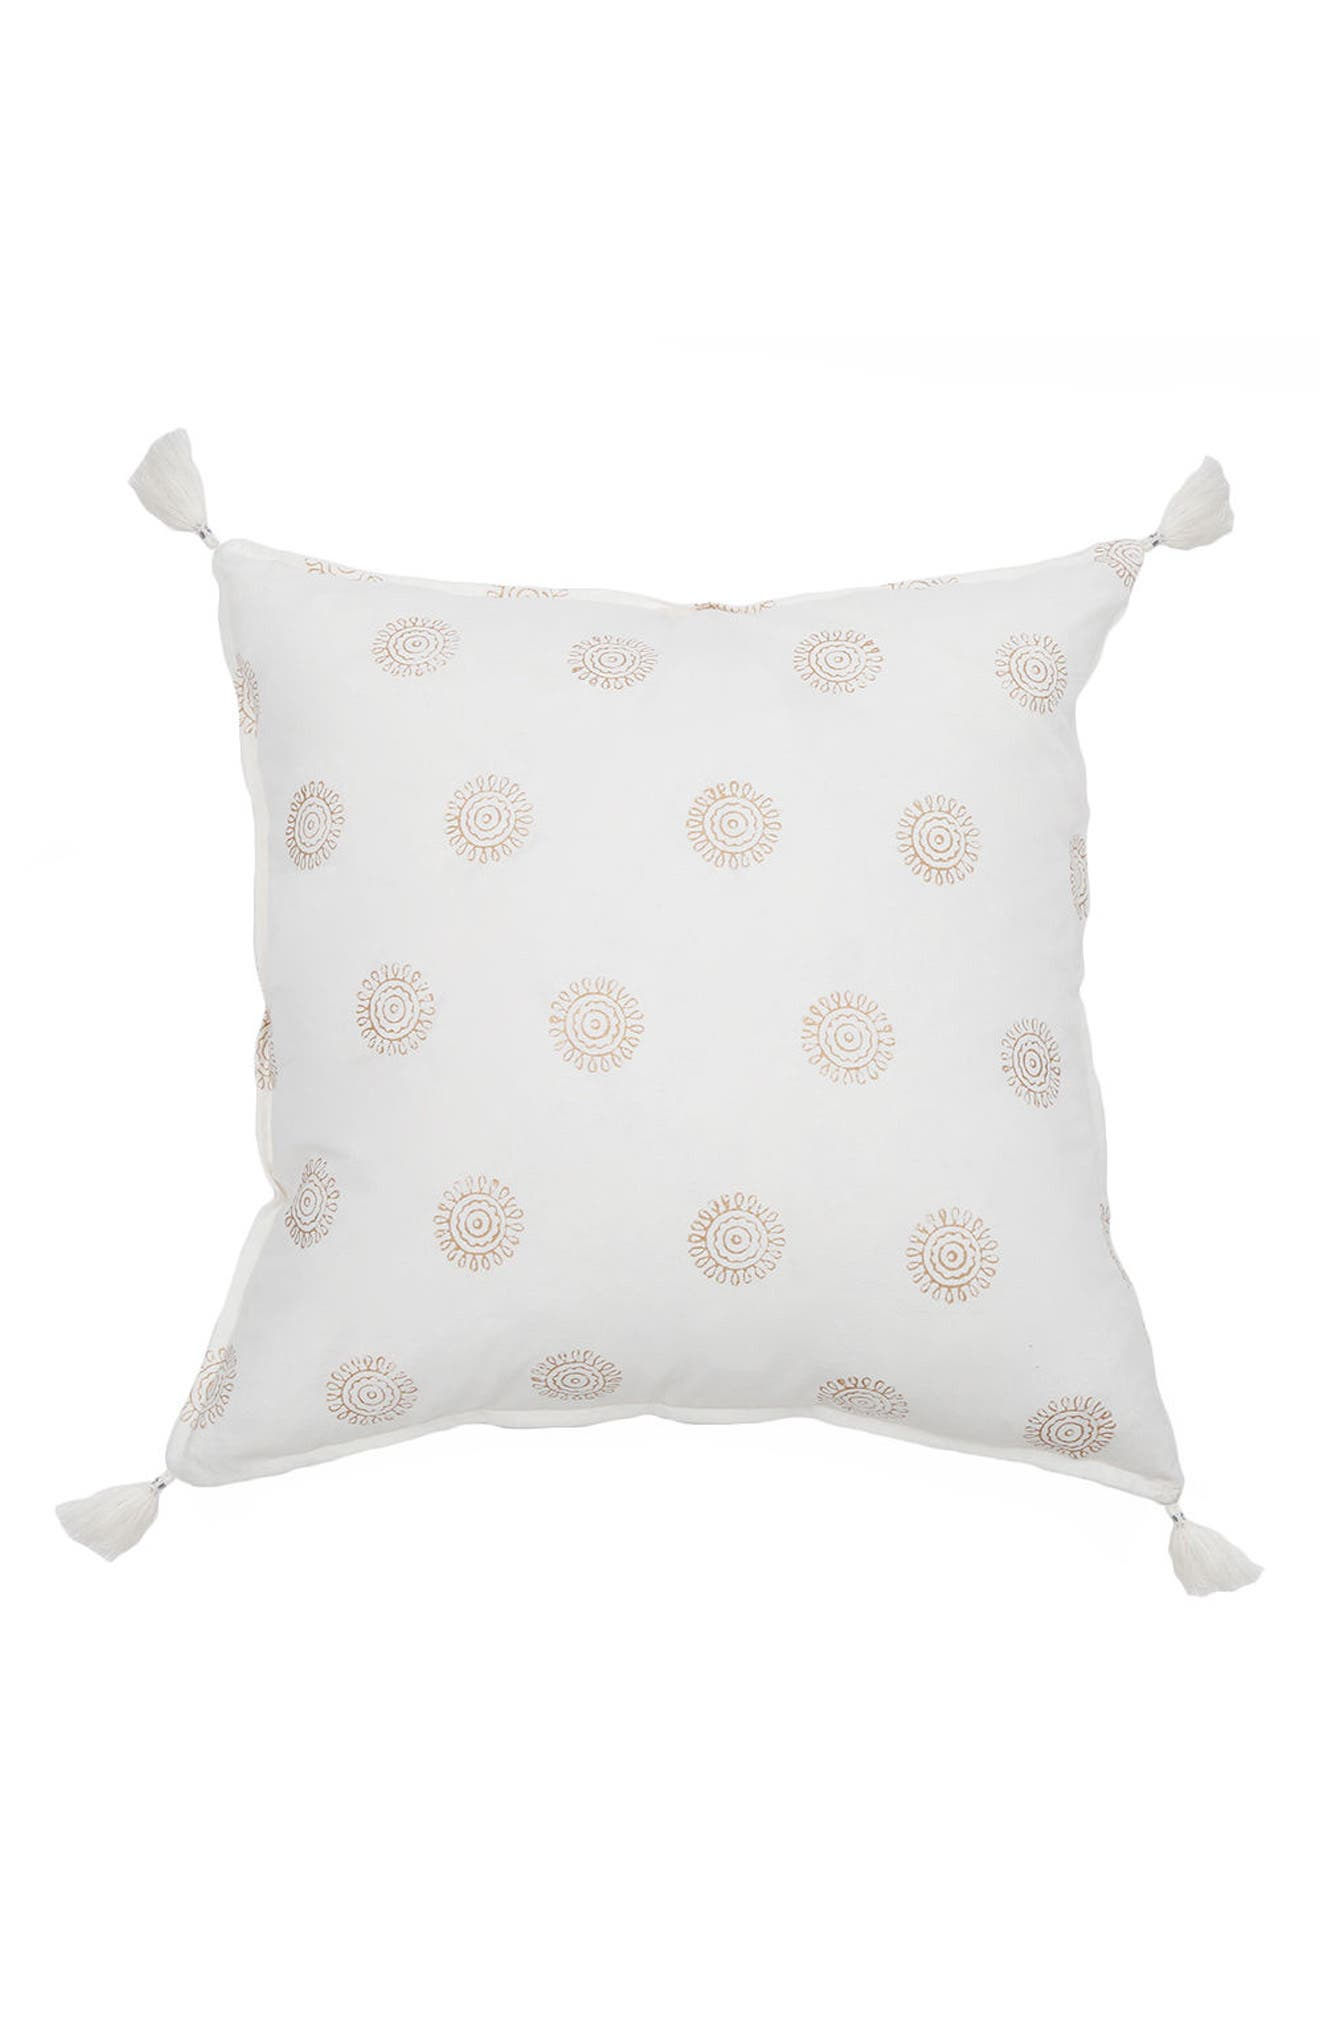 Pom Pom at Home Ravi Accent Pillow